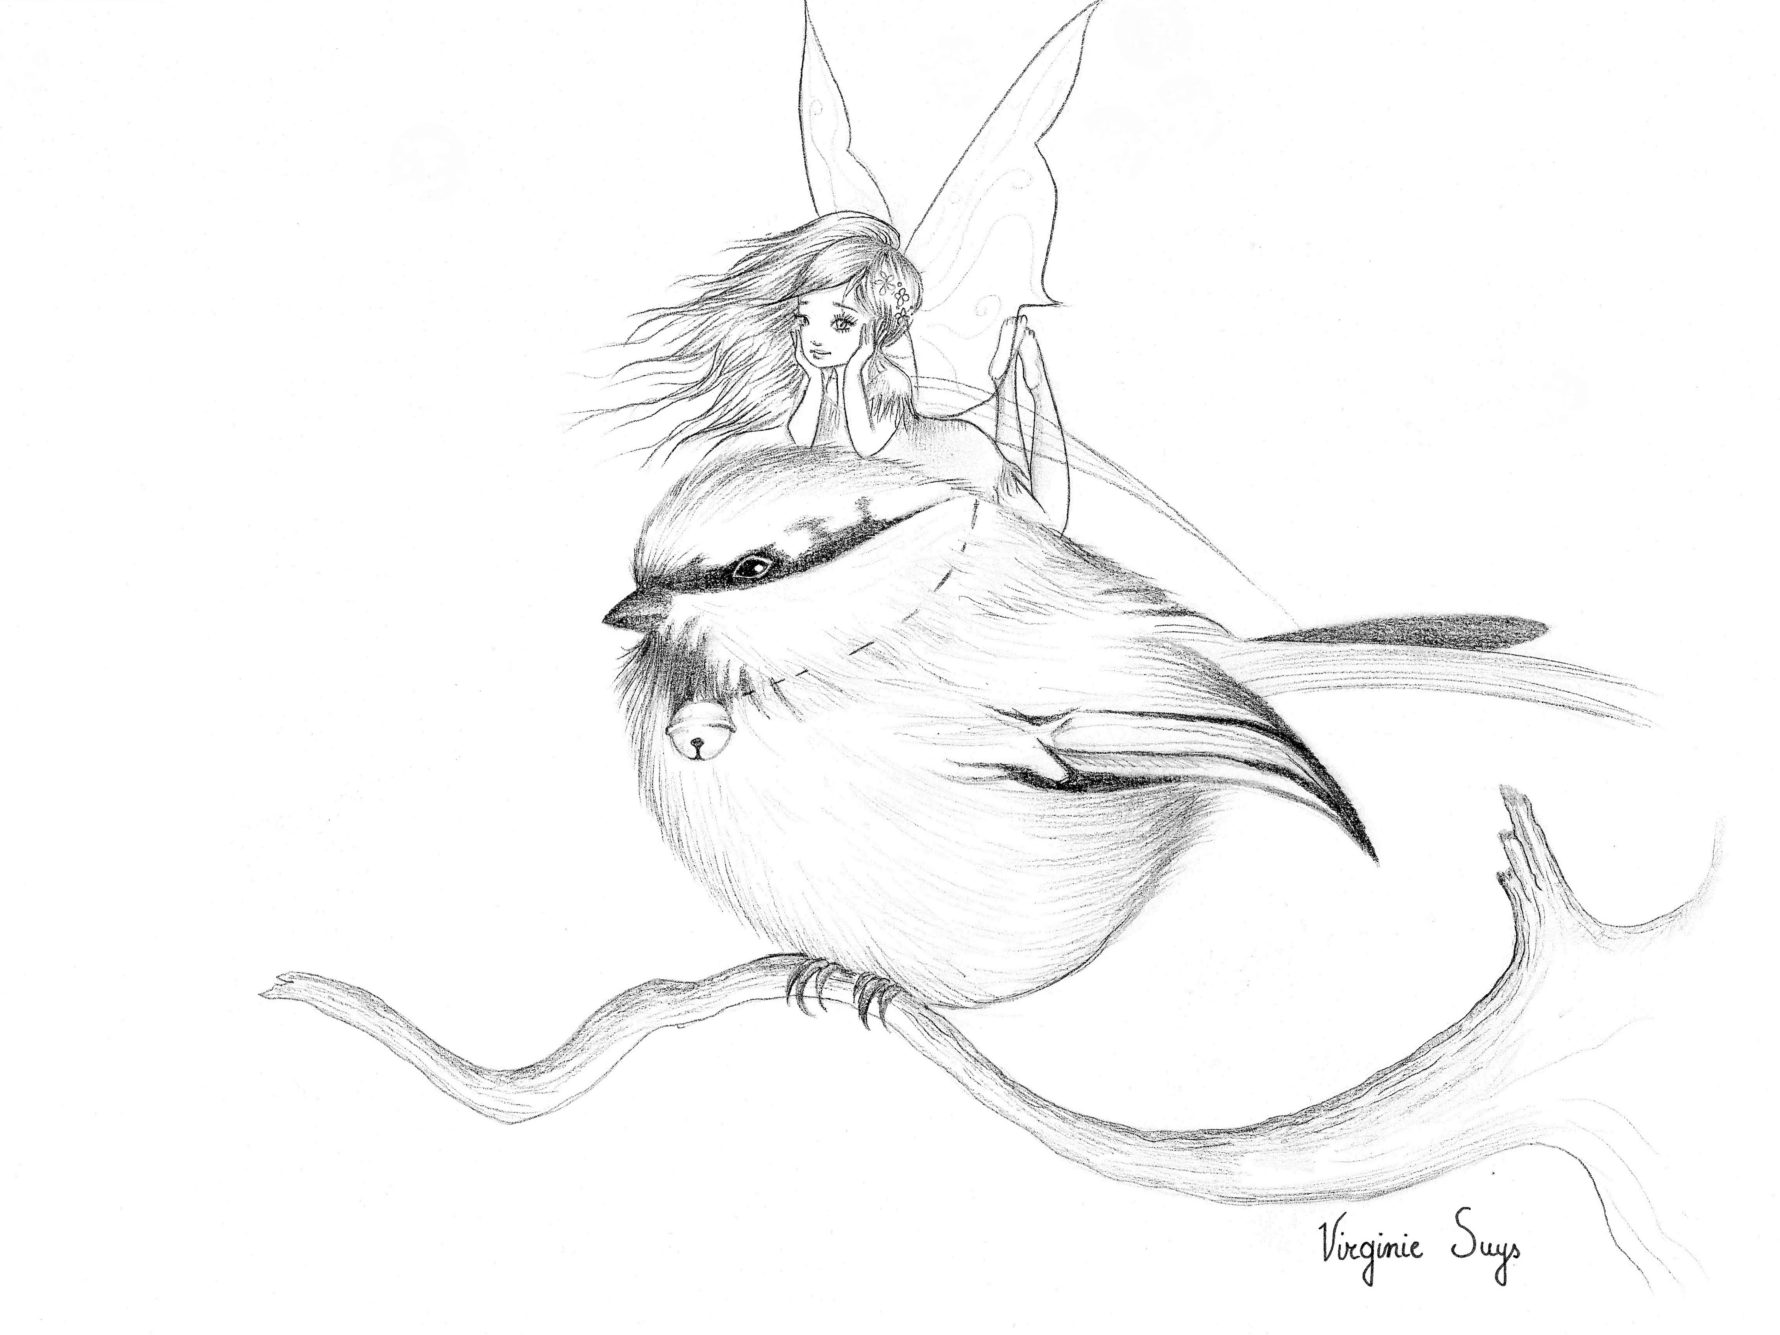 Virginie Suys Little bird & fairy in black & white illustration